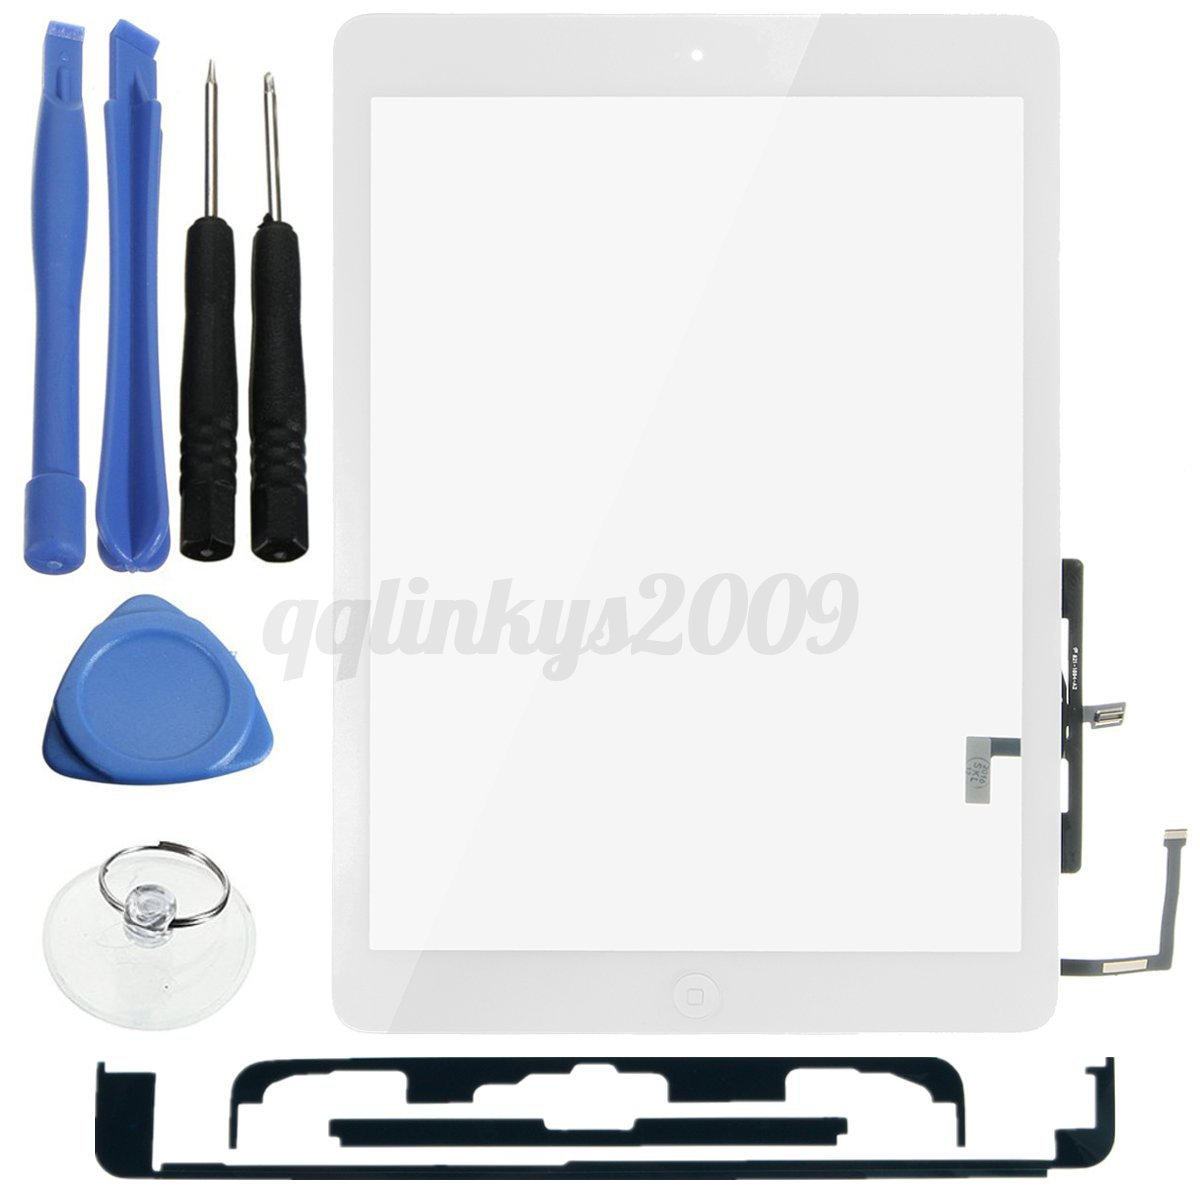 Touch-Screen-Digitizer-Glass-Lens-Home-Key-Tool-For-Apple-iPad-Air-5-A1474-A1475